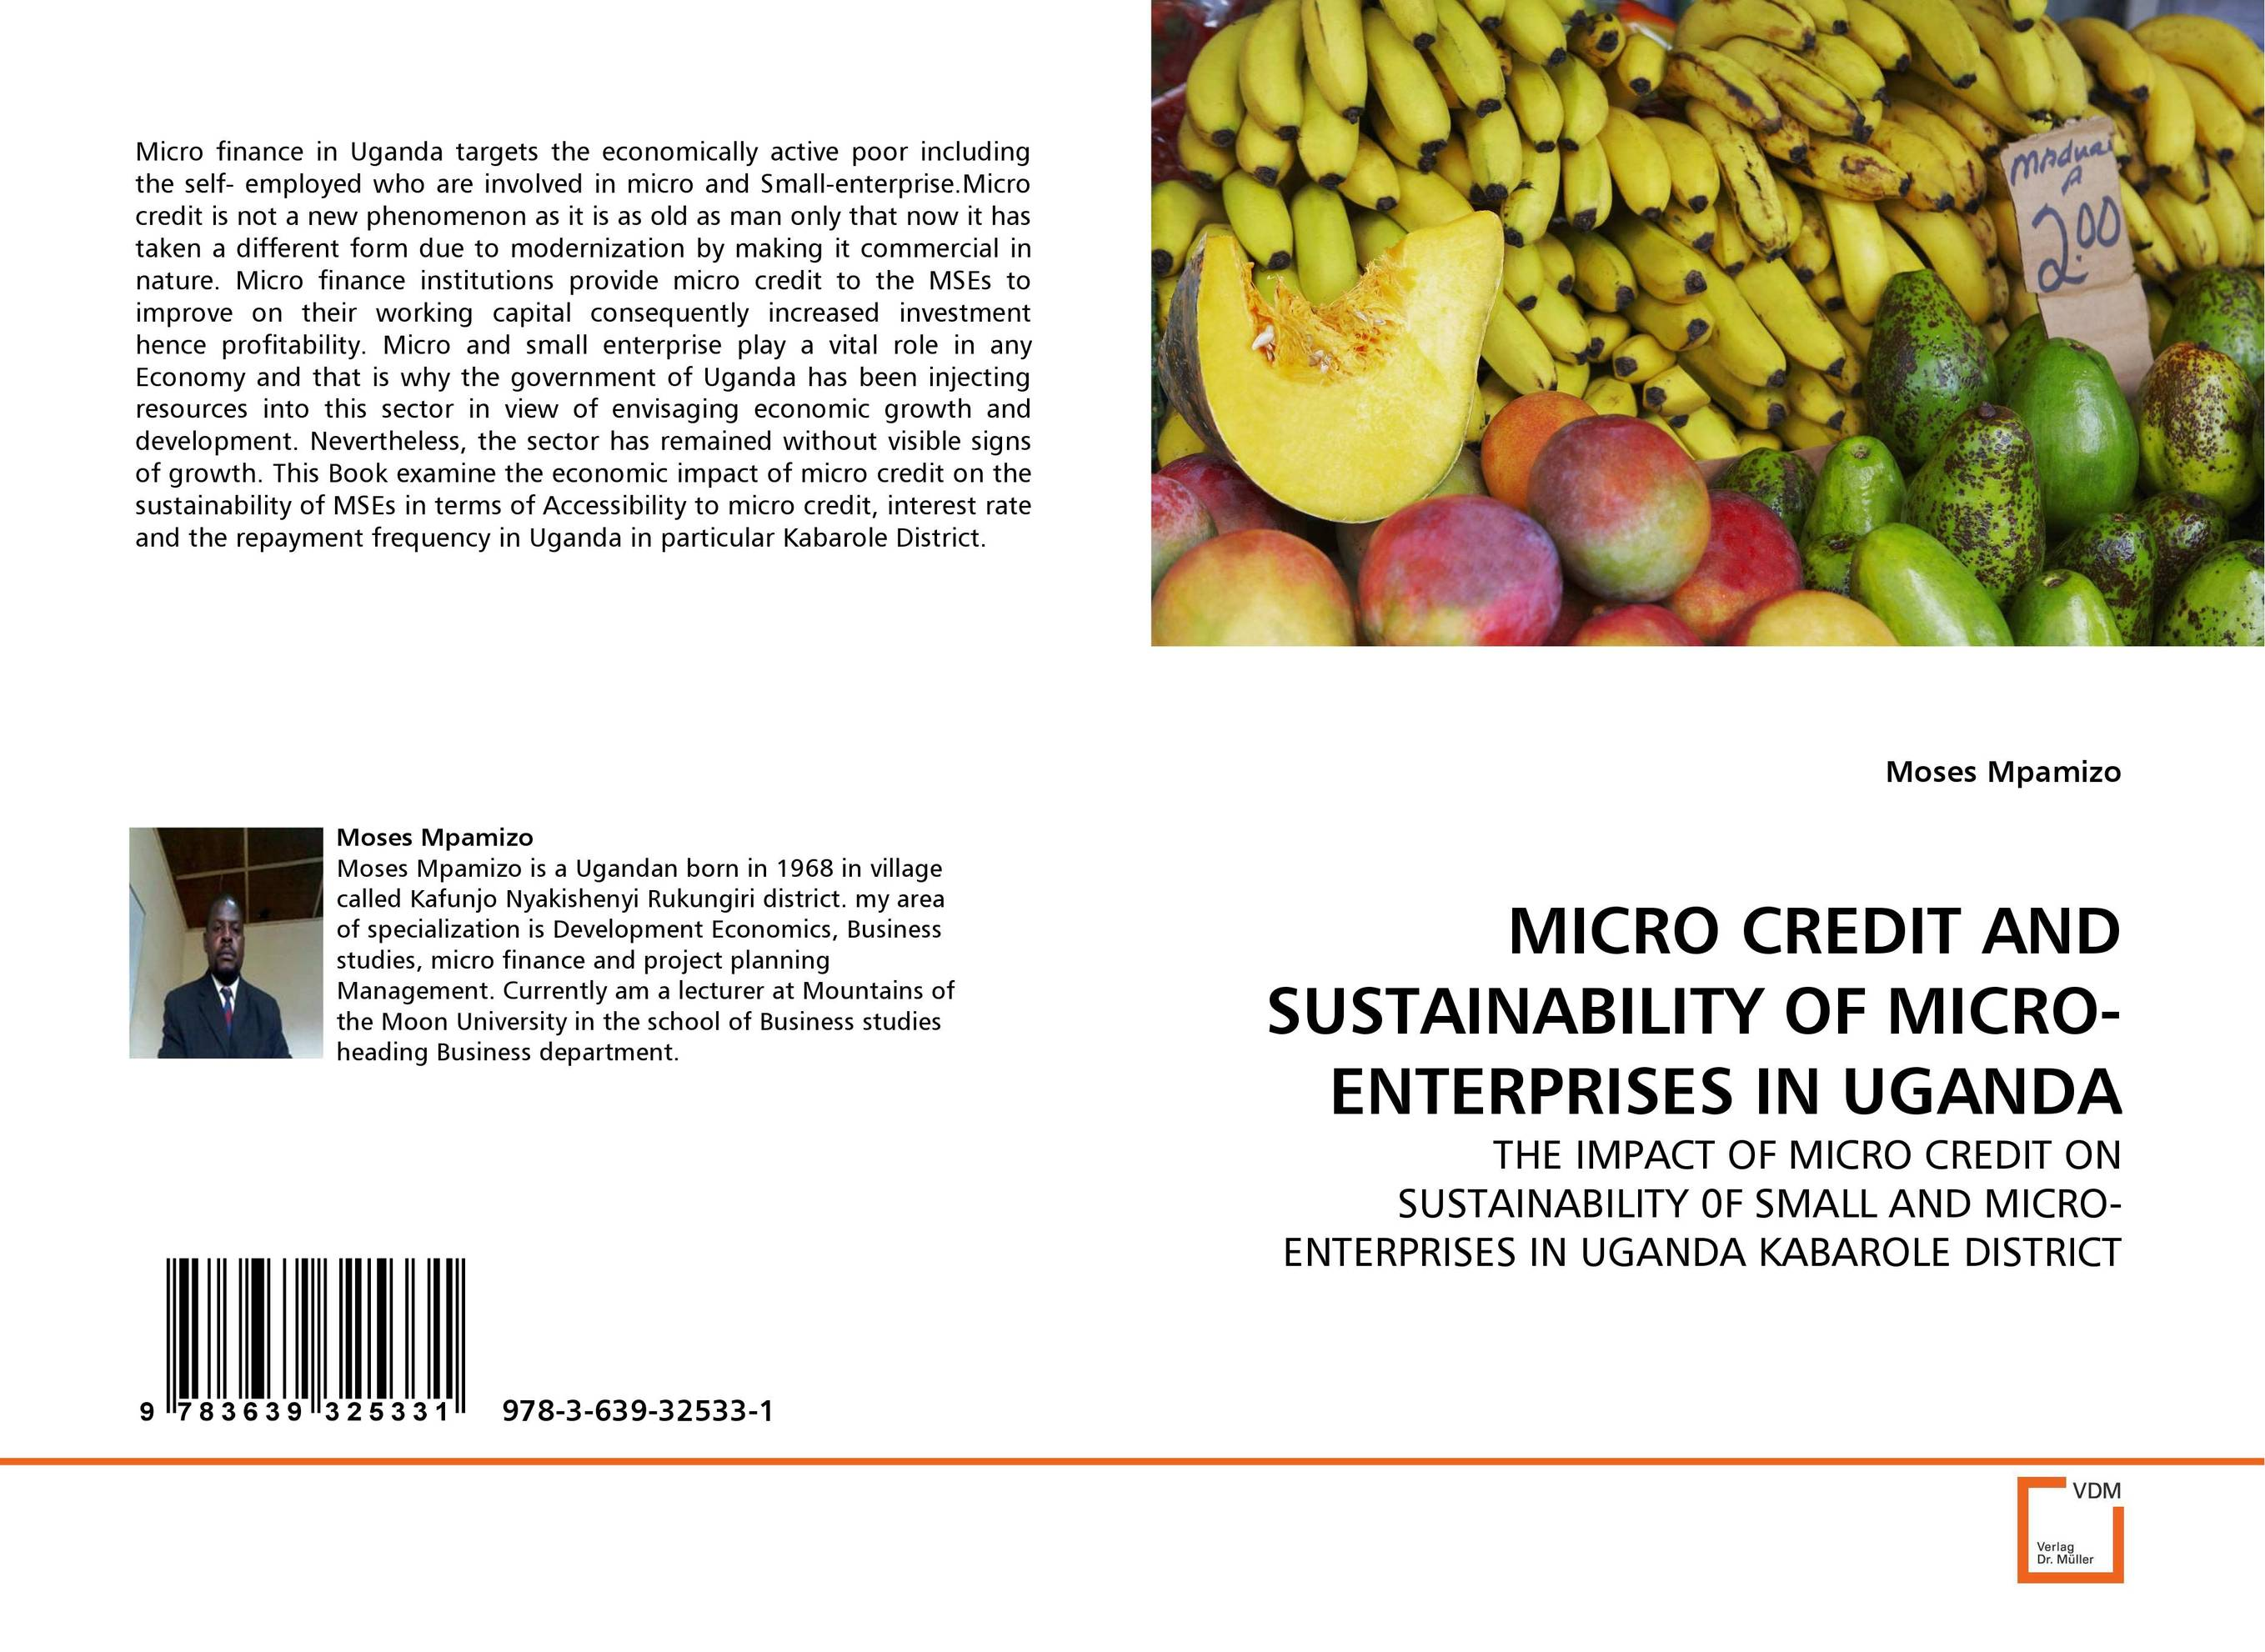 MICRO CREDIT AND SUSTAINABILITY OF MICRO-ENTERPRISES IN UGANDA srichander ramaswamy managing credit risk in corporate bond portfolios a practitioner s guide